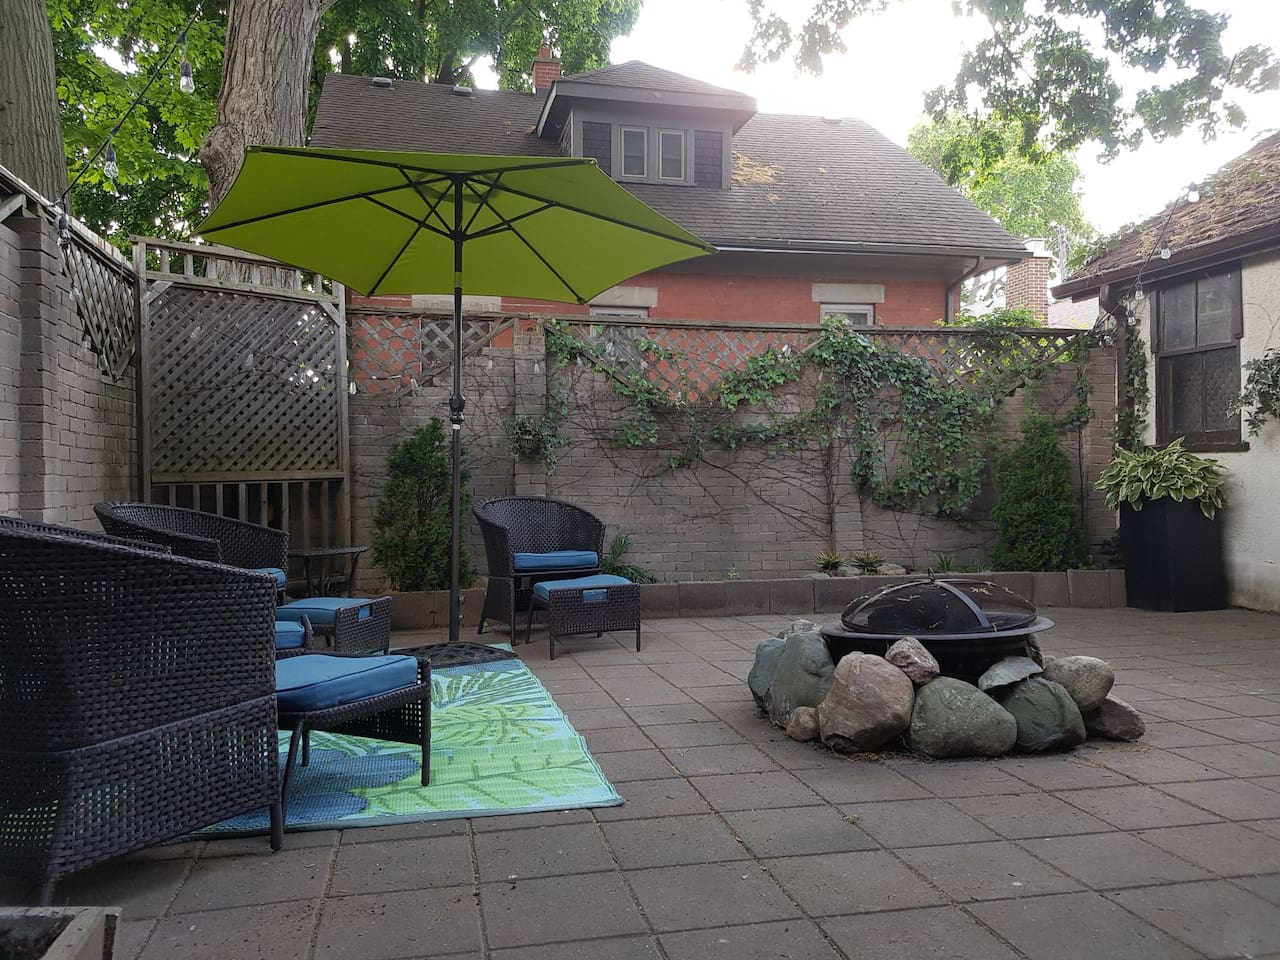 cozy and private backyard to Relax Inn. Remote control Patio Lanterns will light up your little piece of paradise